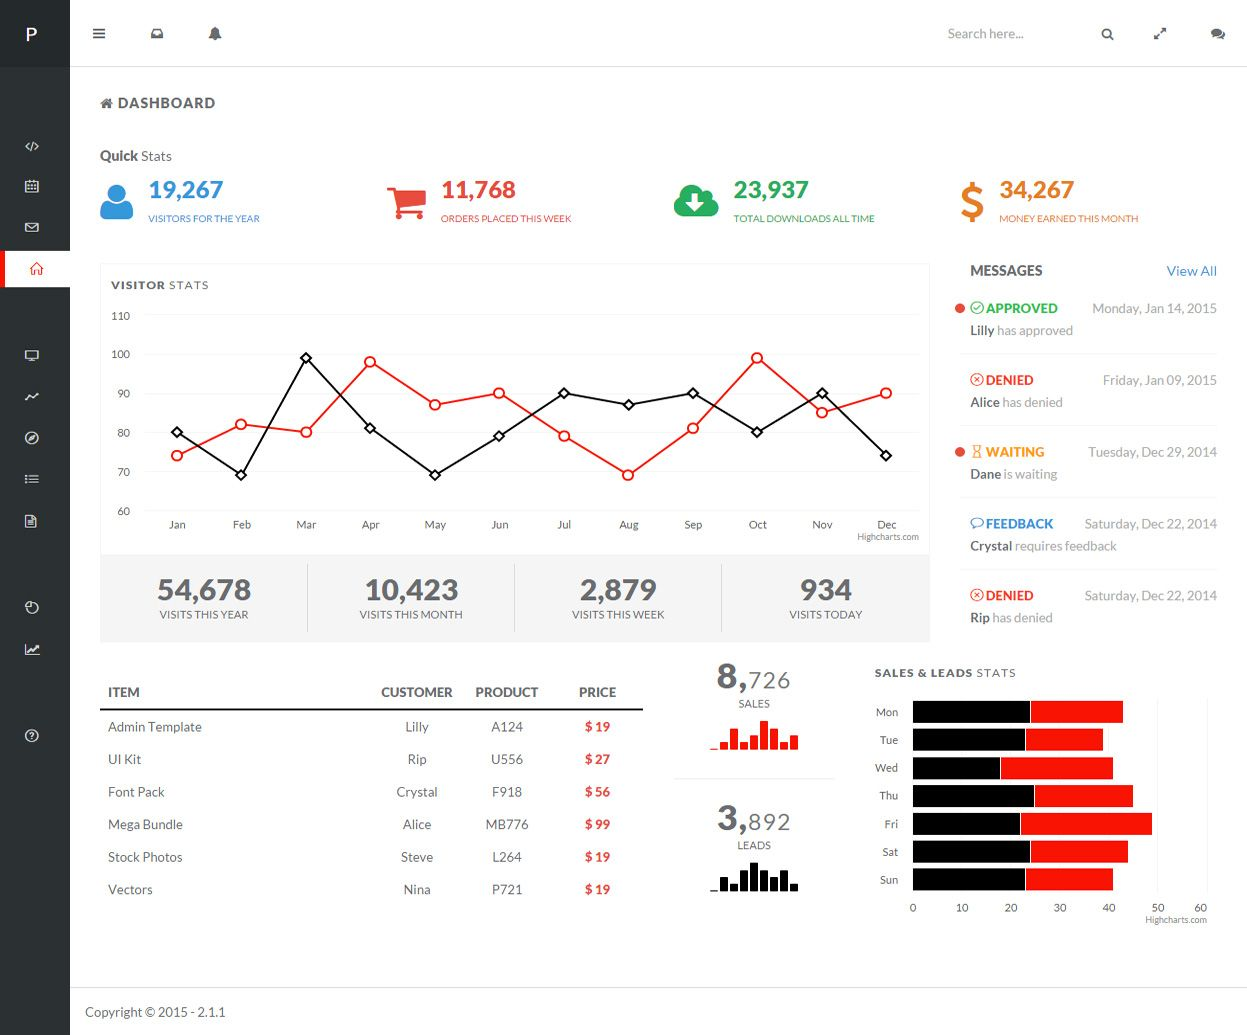 Pixels is Premium full Responsive Admin #dashboard HTML5 template ...